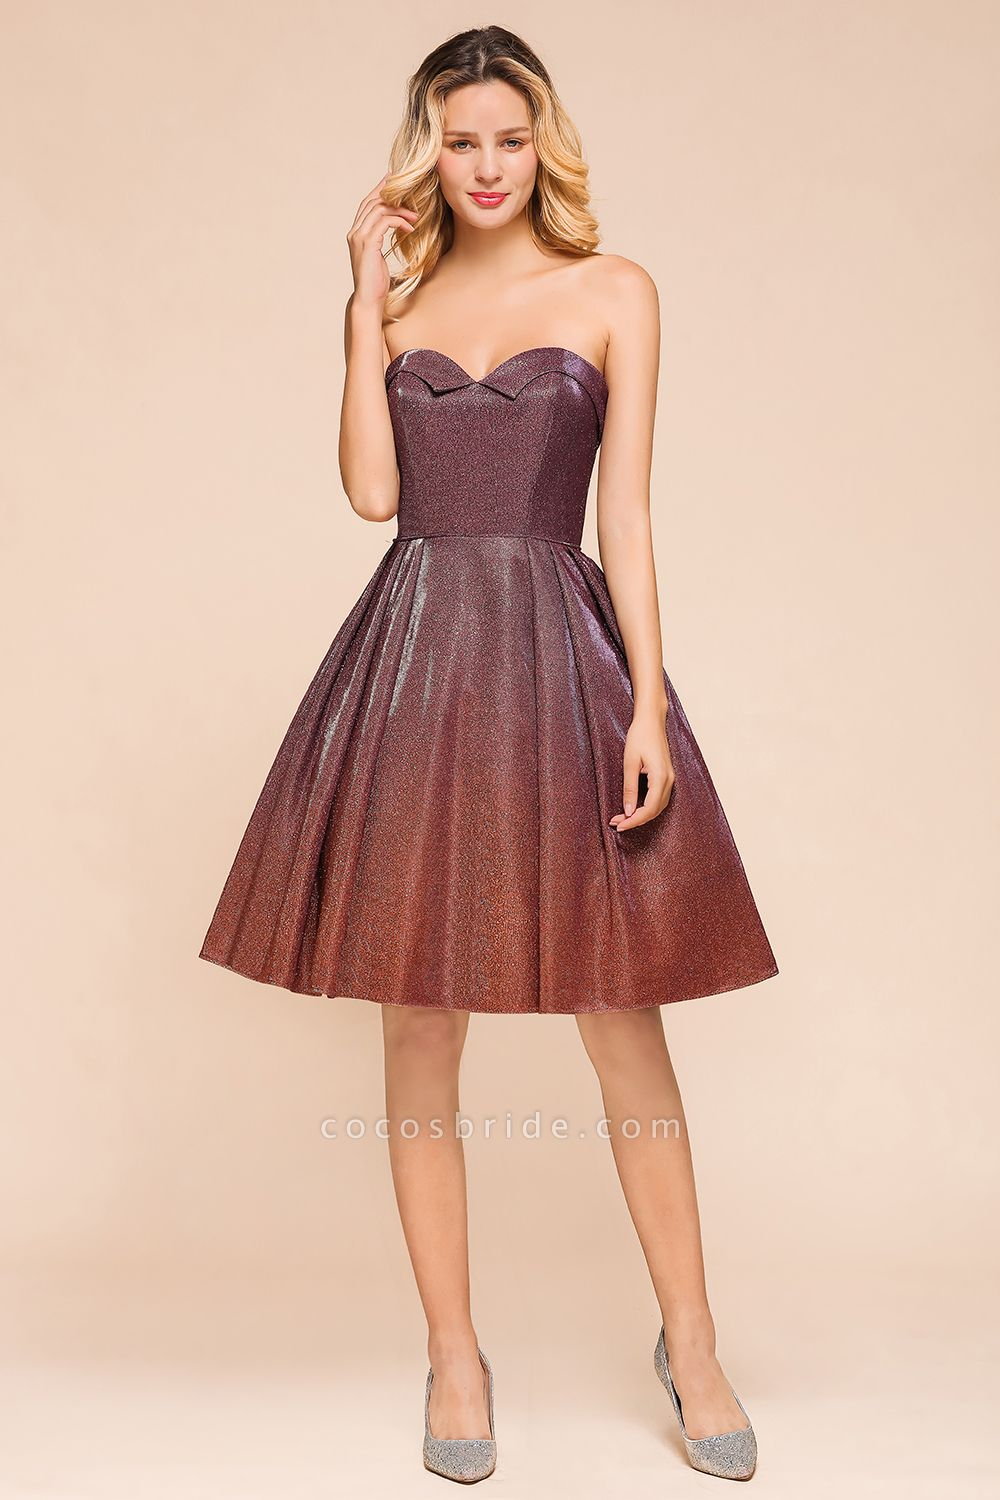 Ombre Sweetheart Backless Short A Line Prom Dress